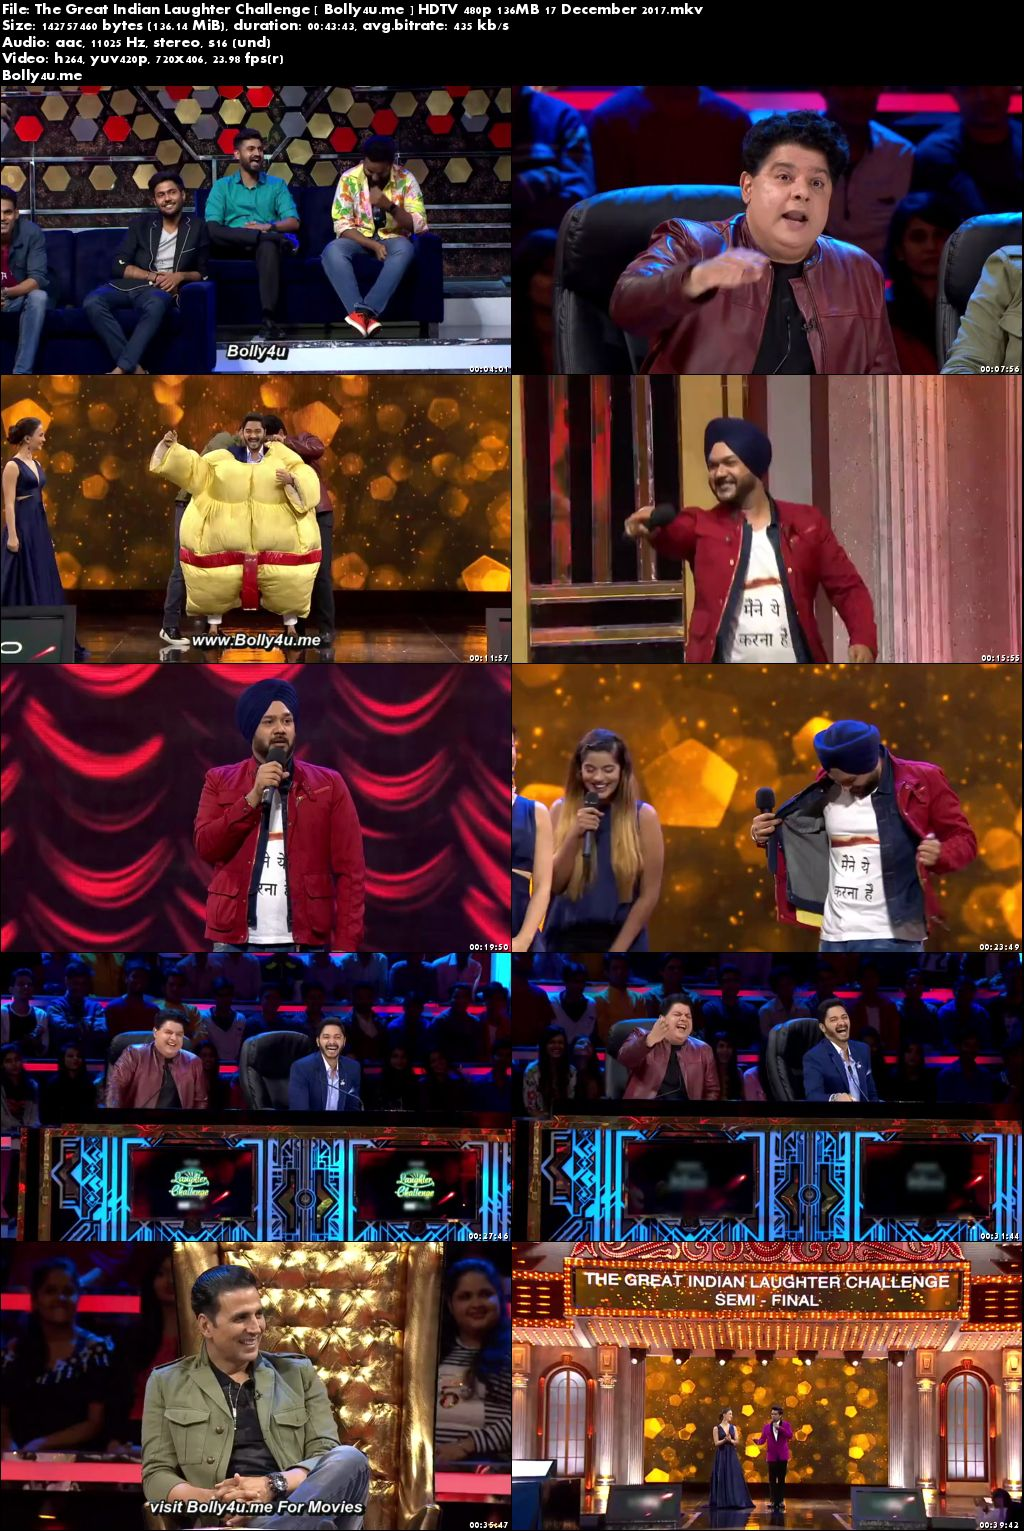 The Great Indian Laughter Challenge HDTV 480p 140MB 17 Dec 2017 Download